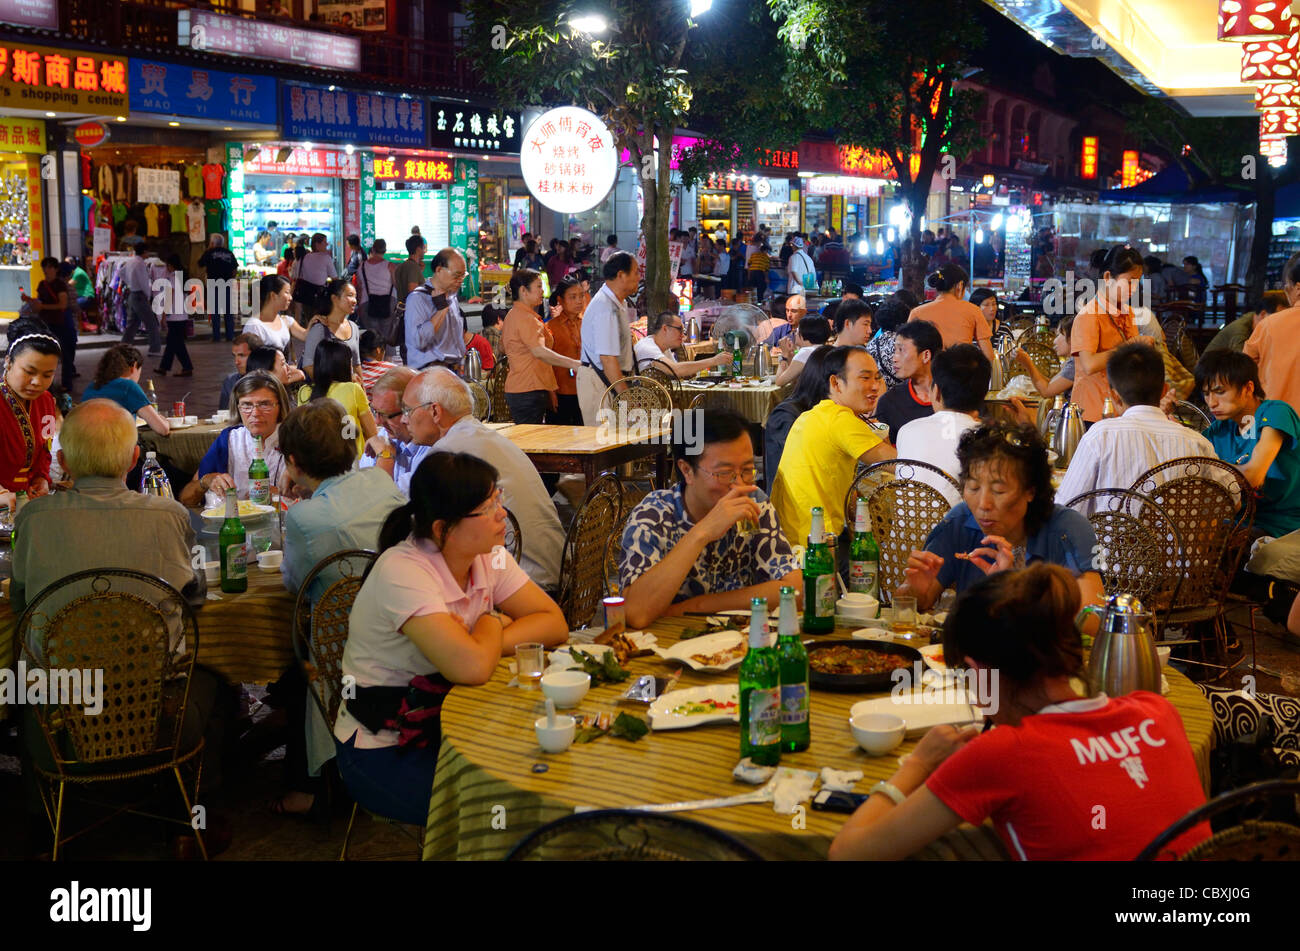 Chinese people eating alfresco at outdoor street restaurant at night in Yangshuo China Stock Photo